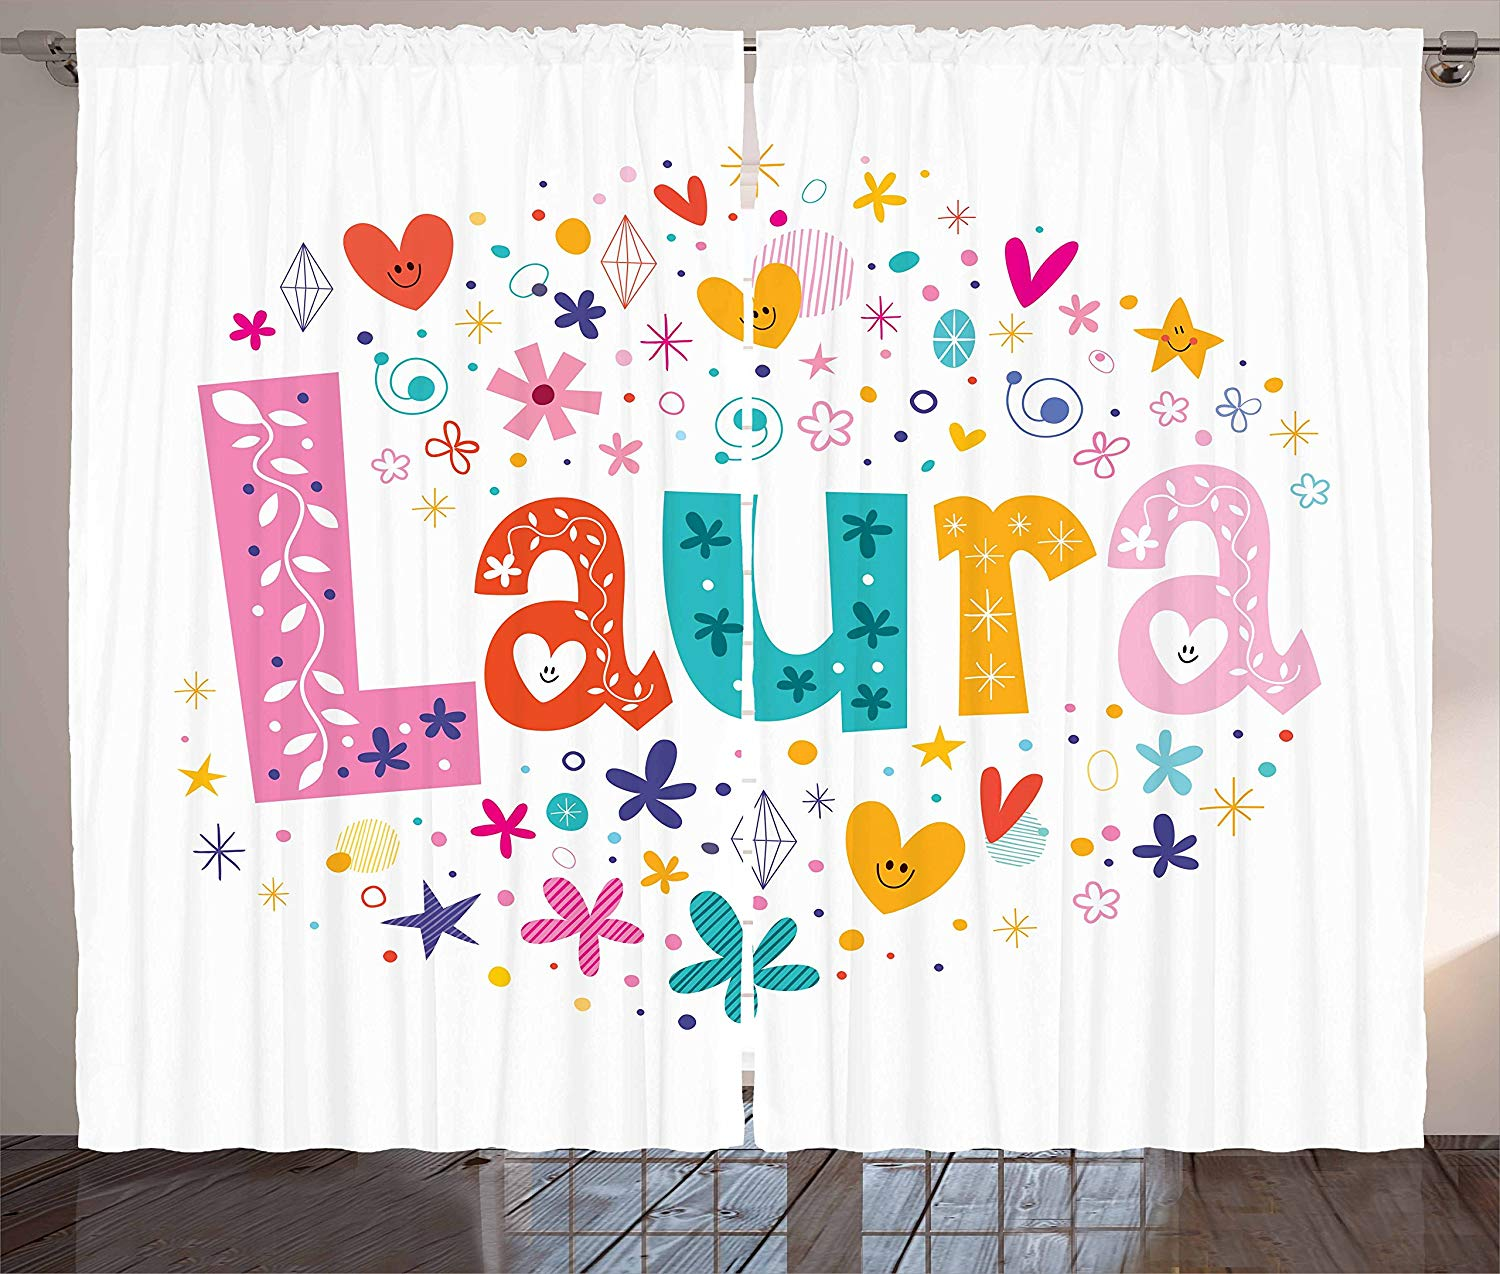 Laura Curtains Baby Girl Name With Vintage Doodle Style Flowers And Stars Colorful Illustration Living Room Bedroom Window